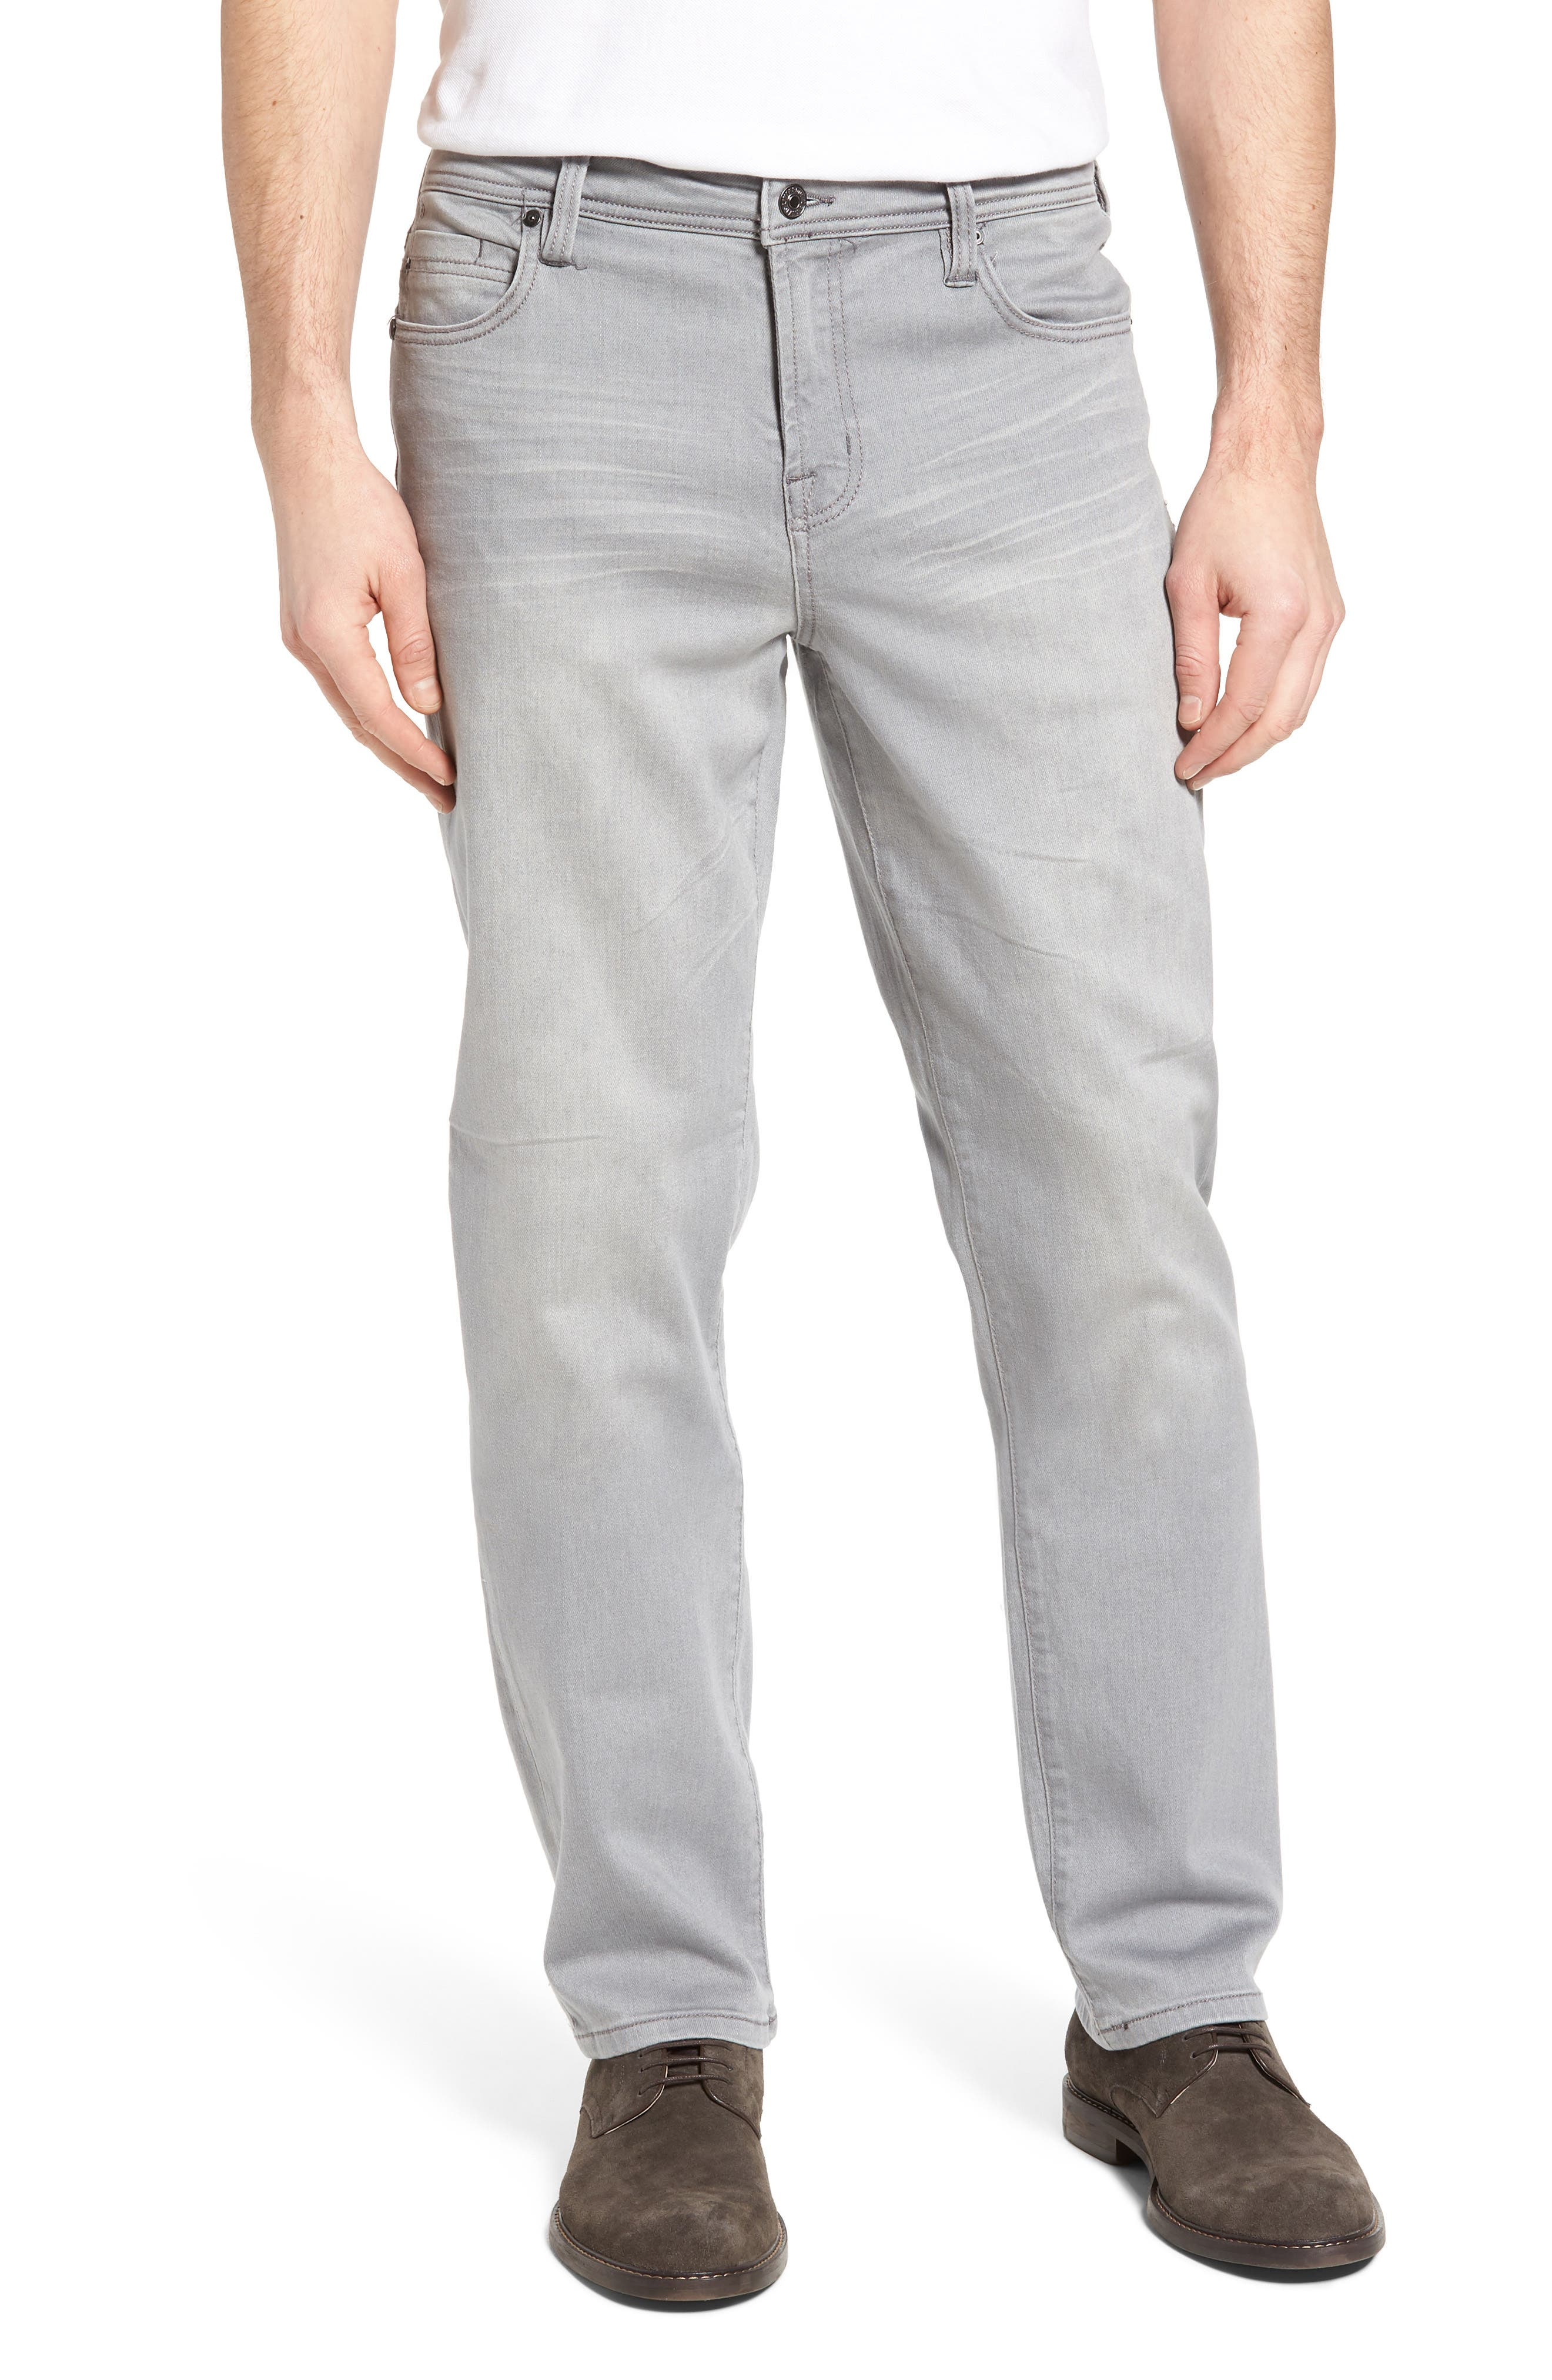 Jeans Co. Regent Relaxed Fit Jeans,                         Main,                         color, Coal Mine Dark